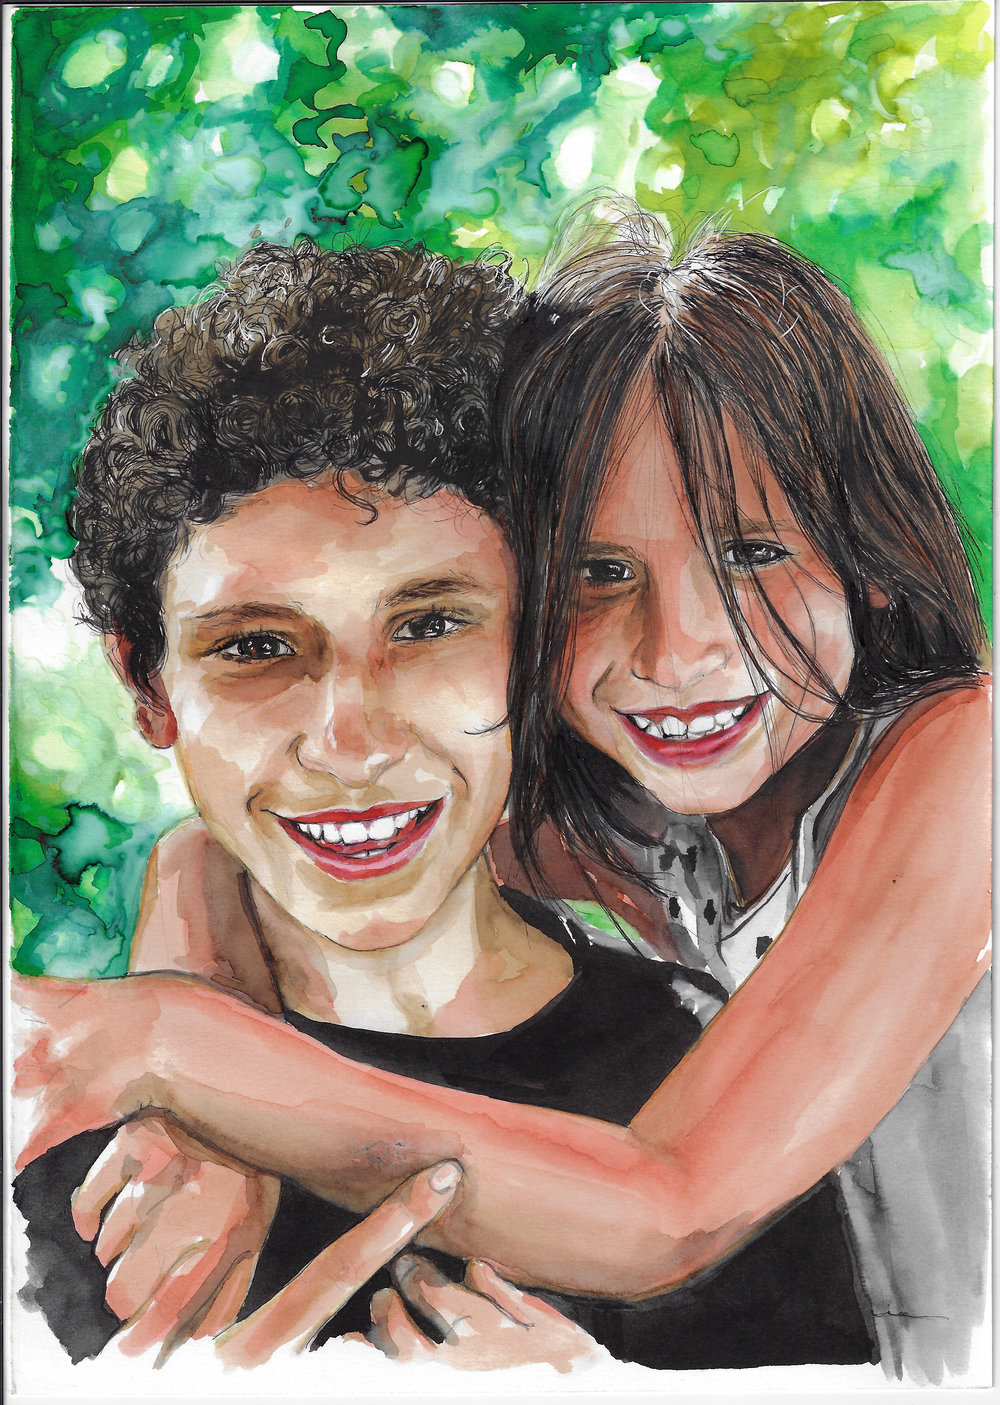 Lovely siblings. Watercolor and ink on Canson Illustration Paper (250g/m2), A4 (29,7x21 cm). Sold. Commissioned work.  (Unavailable.)